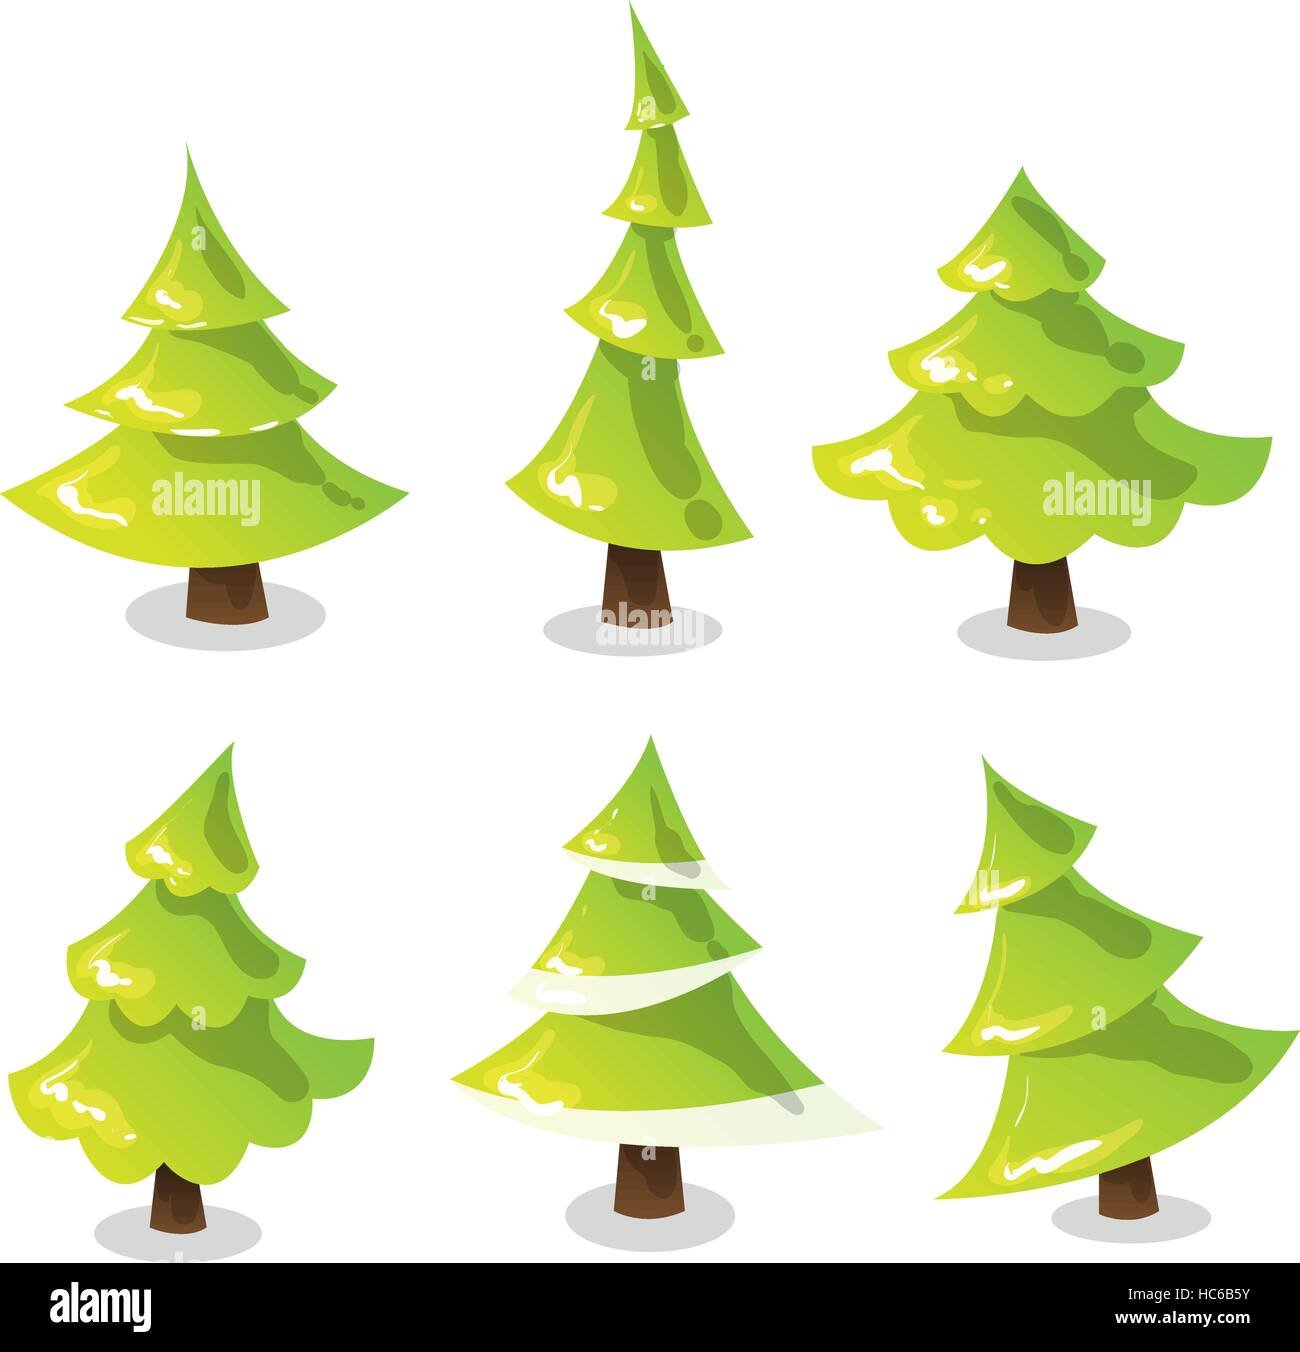 Christmas Tree Vector Image.Christmas Tree Set Abstract Stylized Trees Vector